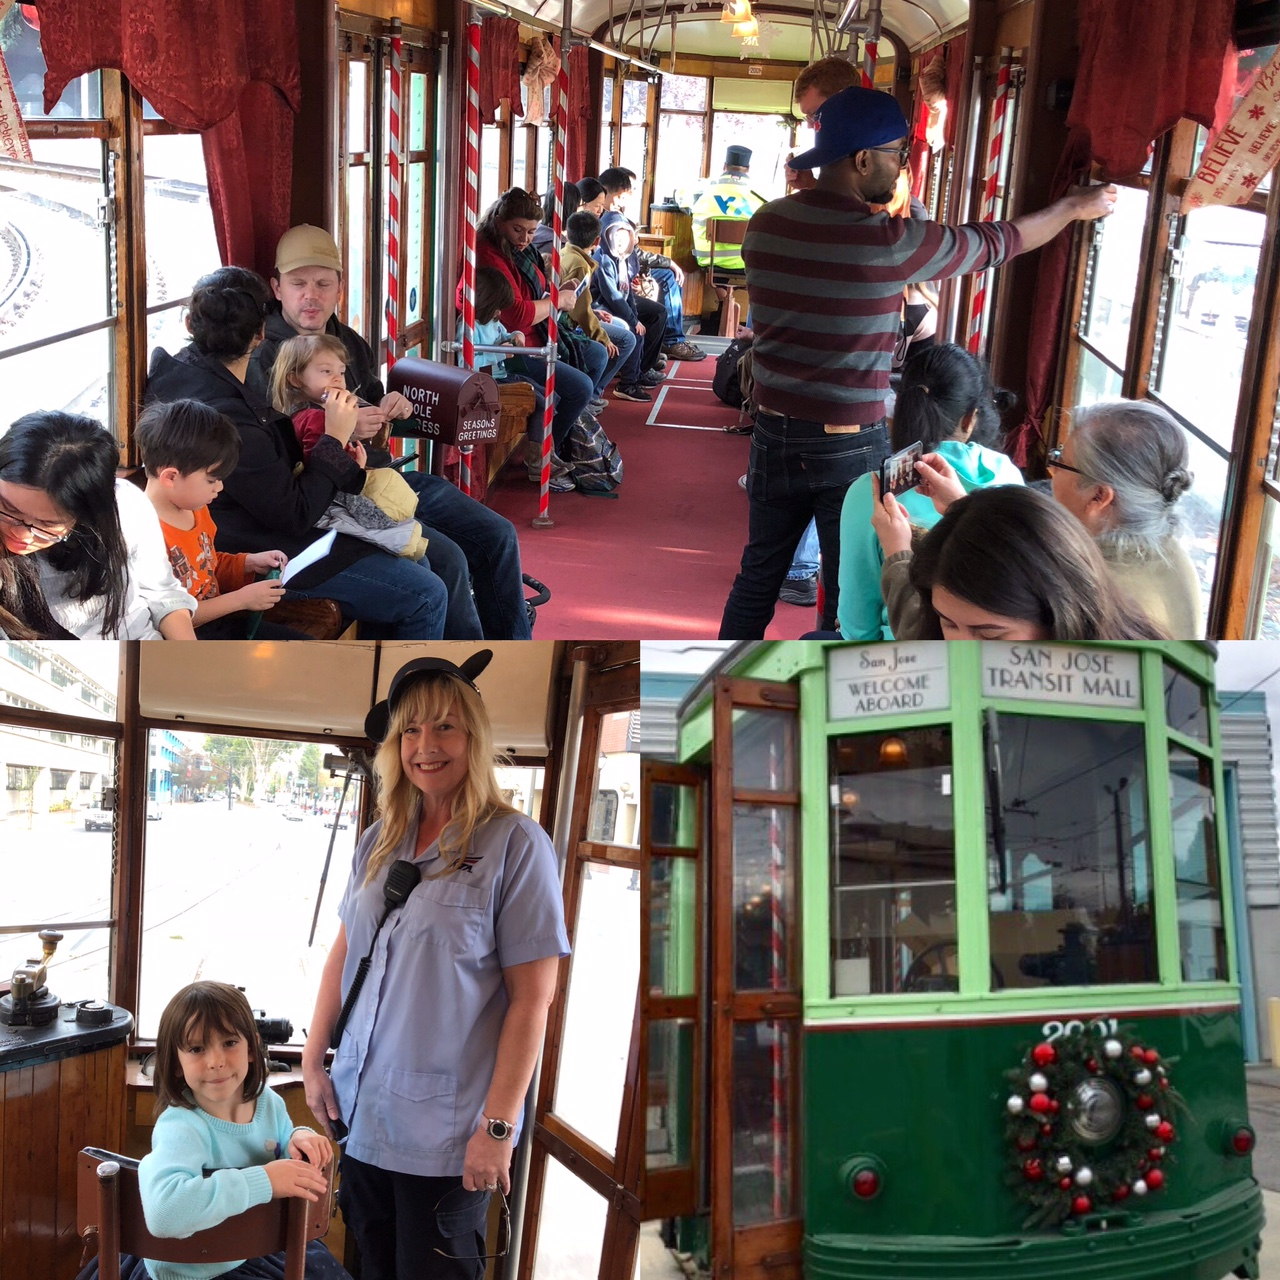 Photots of people riding VTA's Holiday Trolley